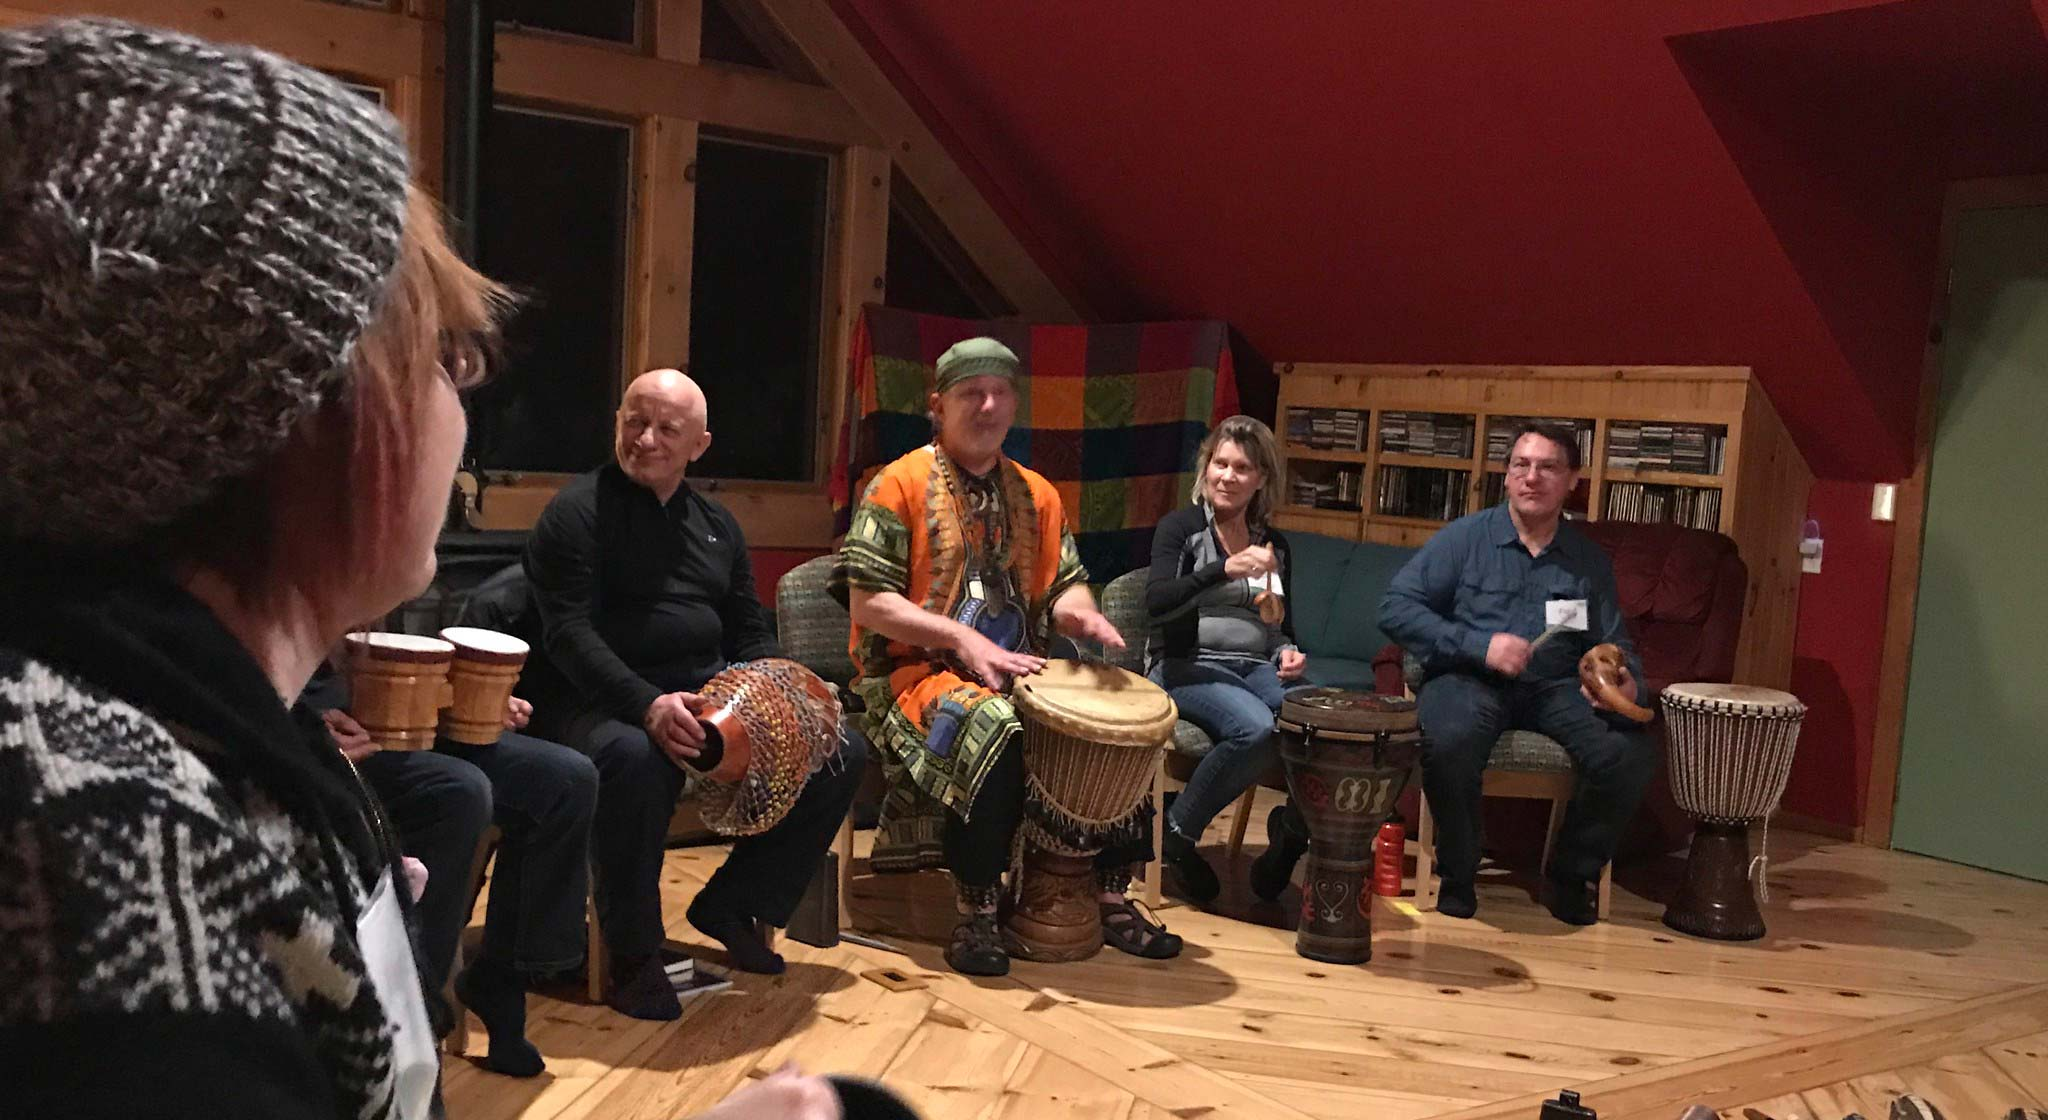 Guests participate in a drum circle with a local artist